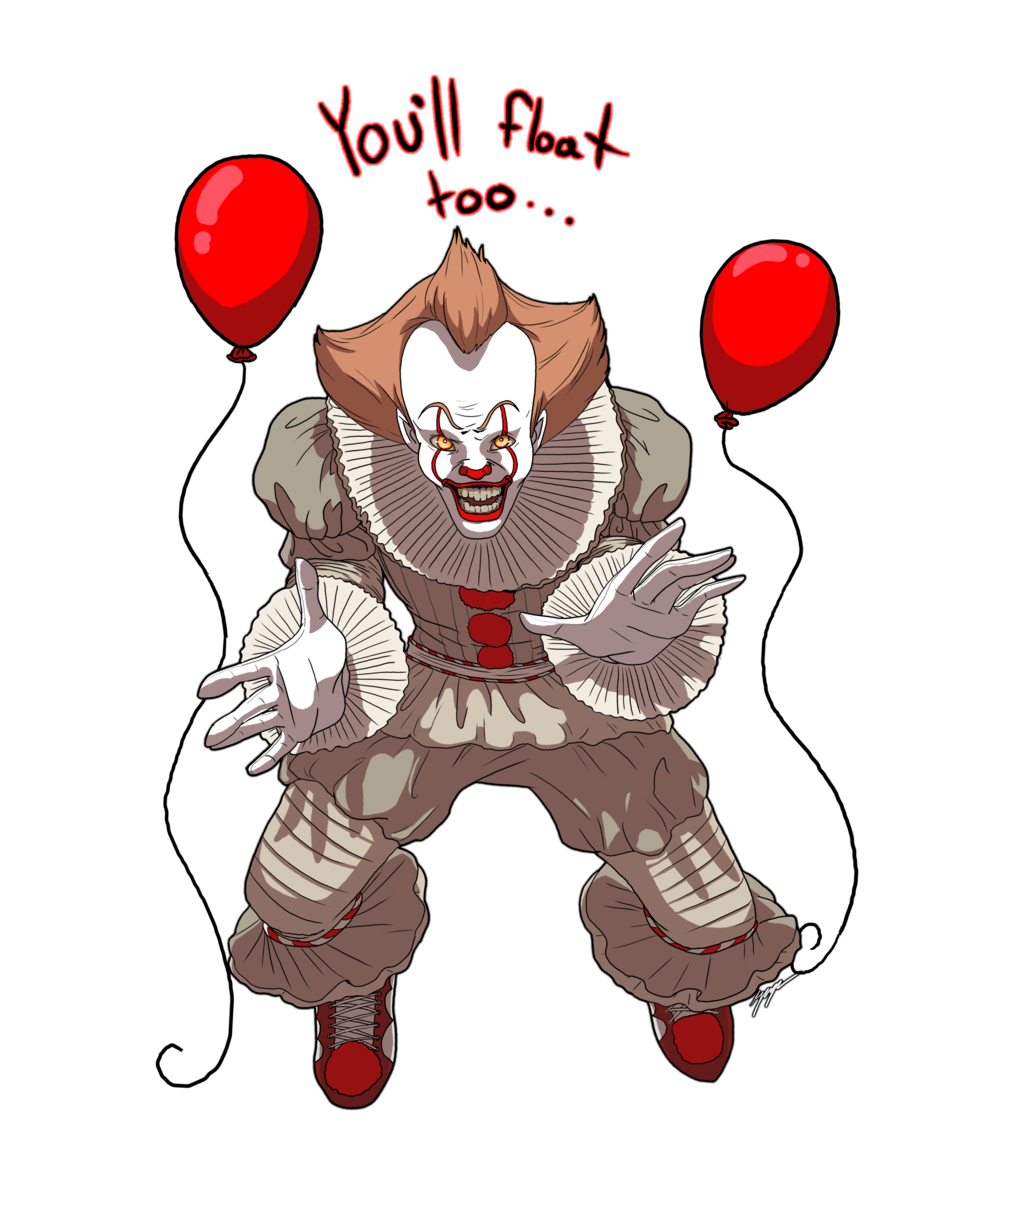 Pin By La Vista Johnowh On Pennywise The Dancing Clown Pennywise Pennywise The Dancing Clown Humanoid Sketch